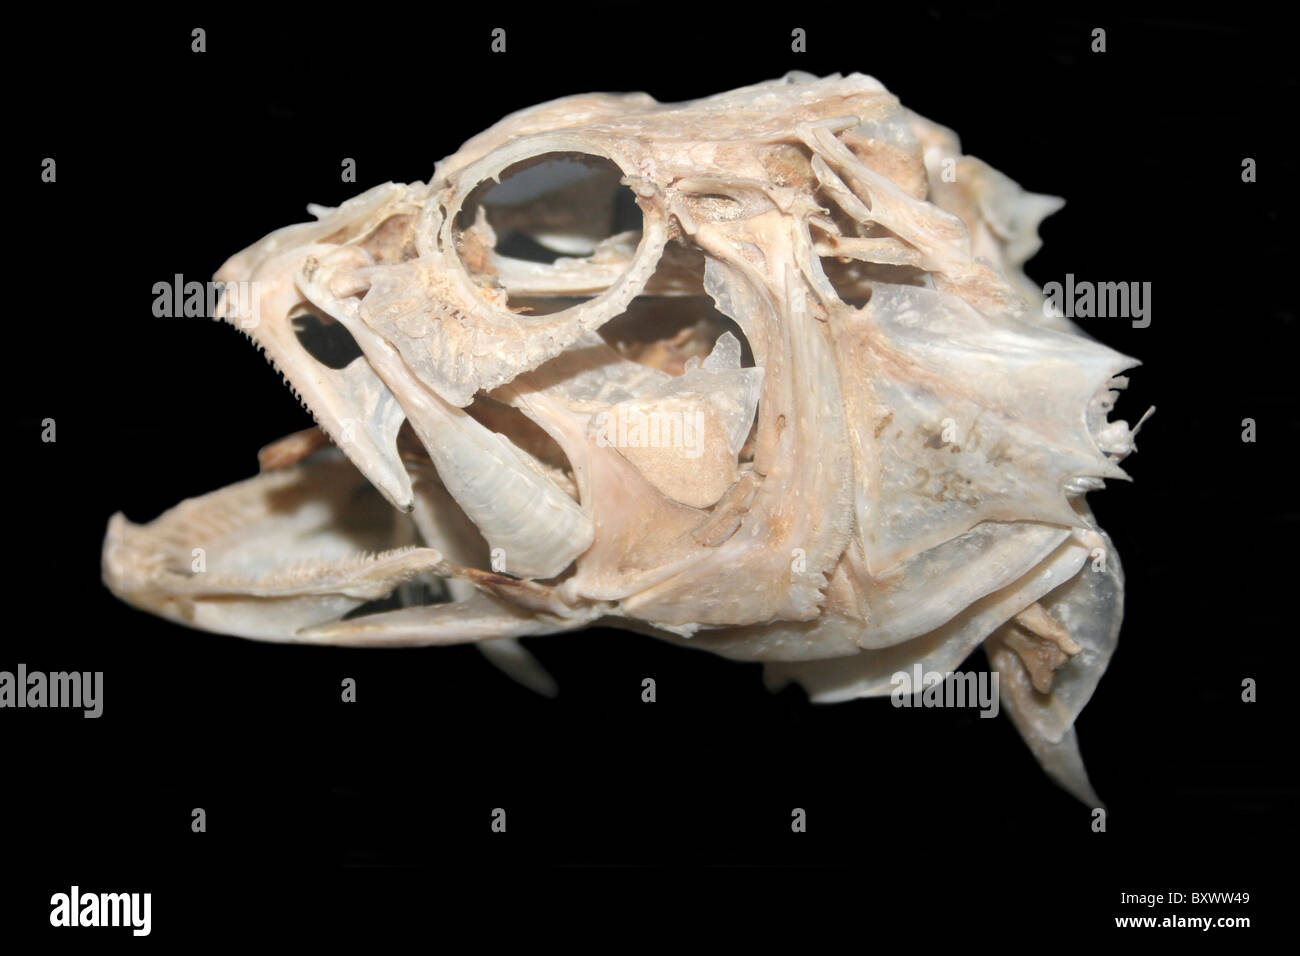 Fish skull anatomy 8388115 - follow4more.info